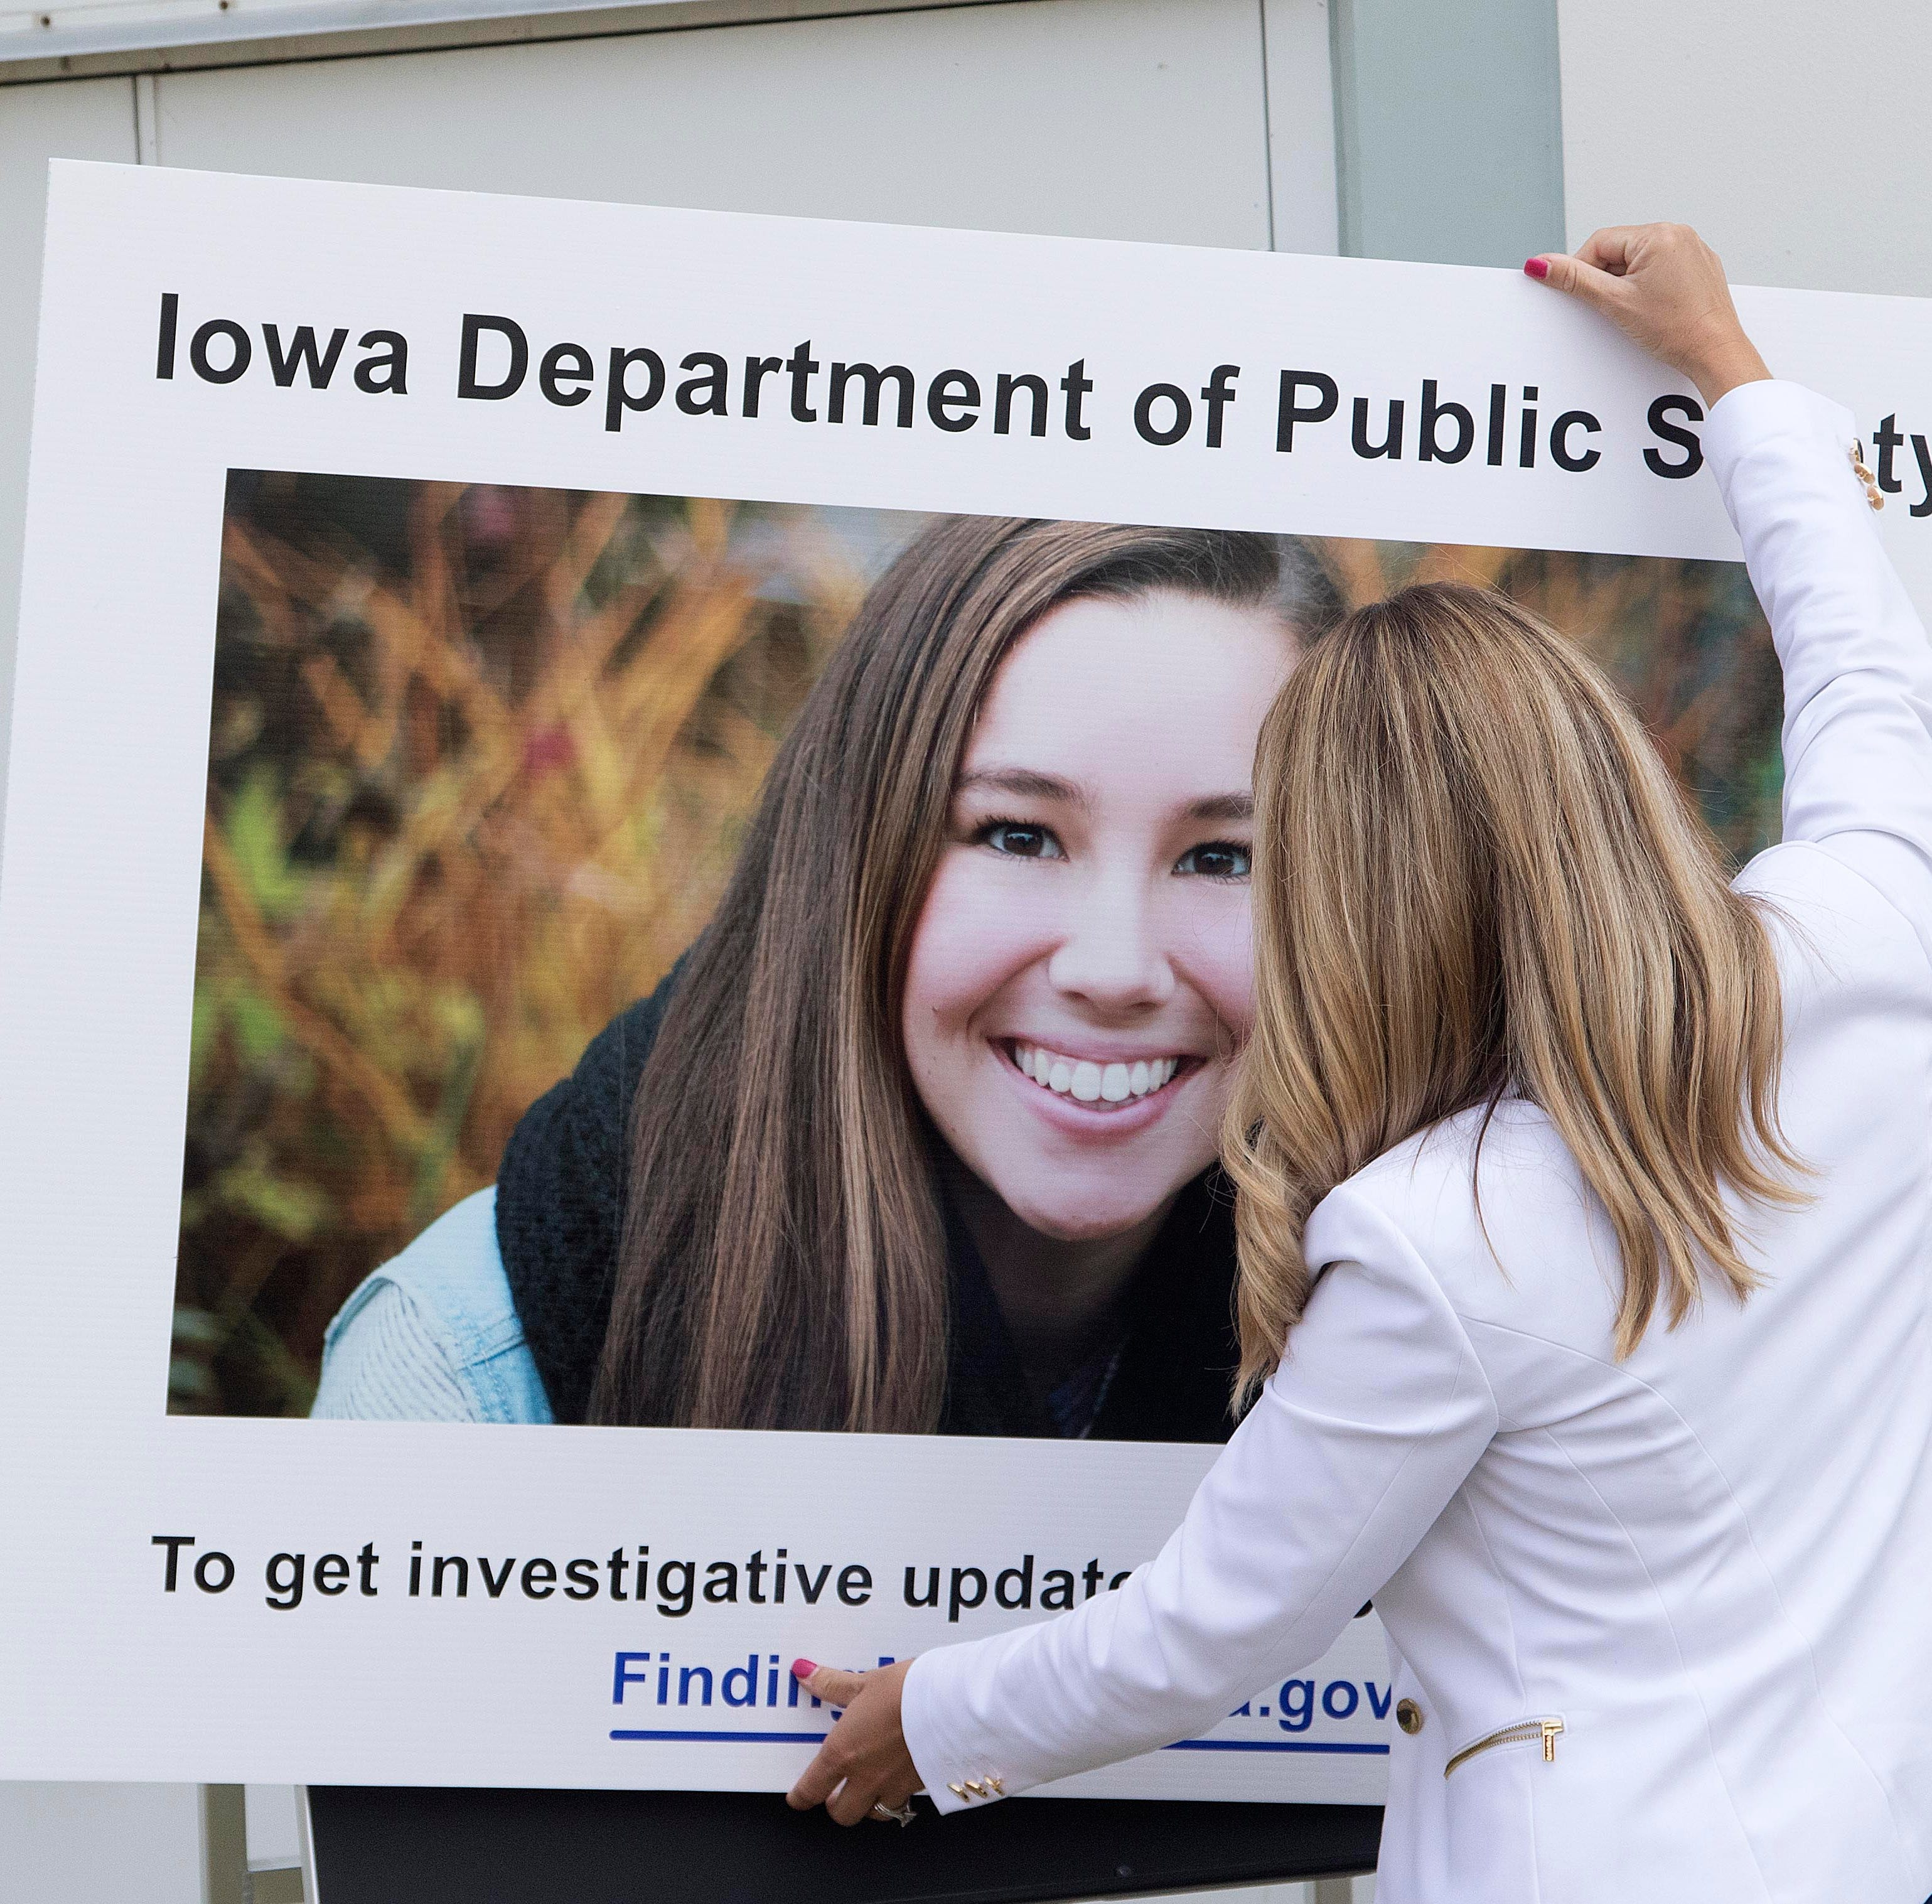 Iowa investigators searching for Mollie Tibbetts ask anyone in these 5 areas the night she vanished to contact them